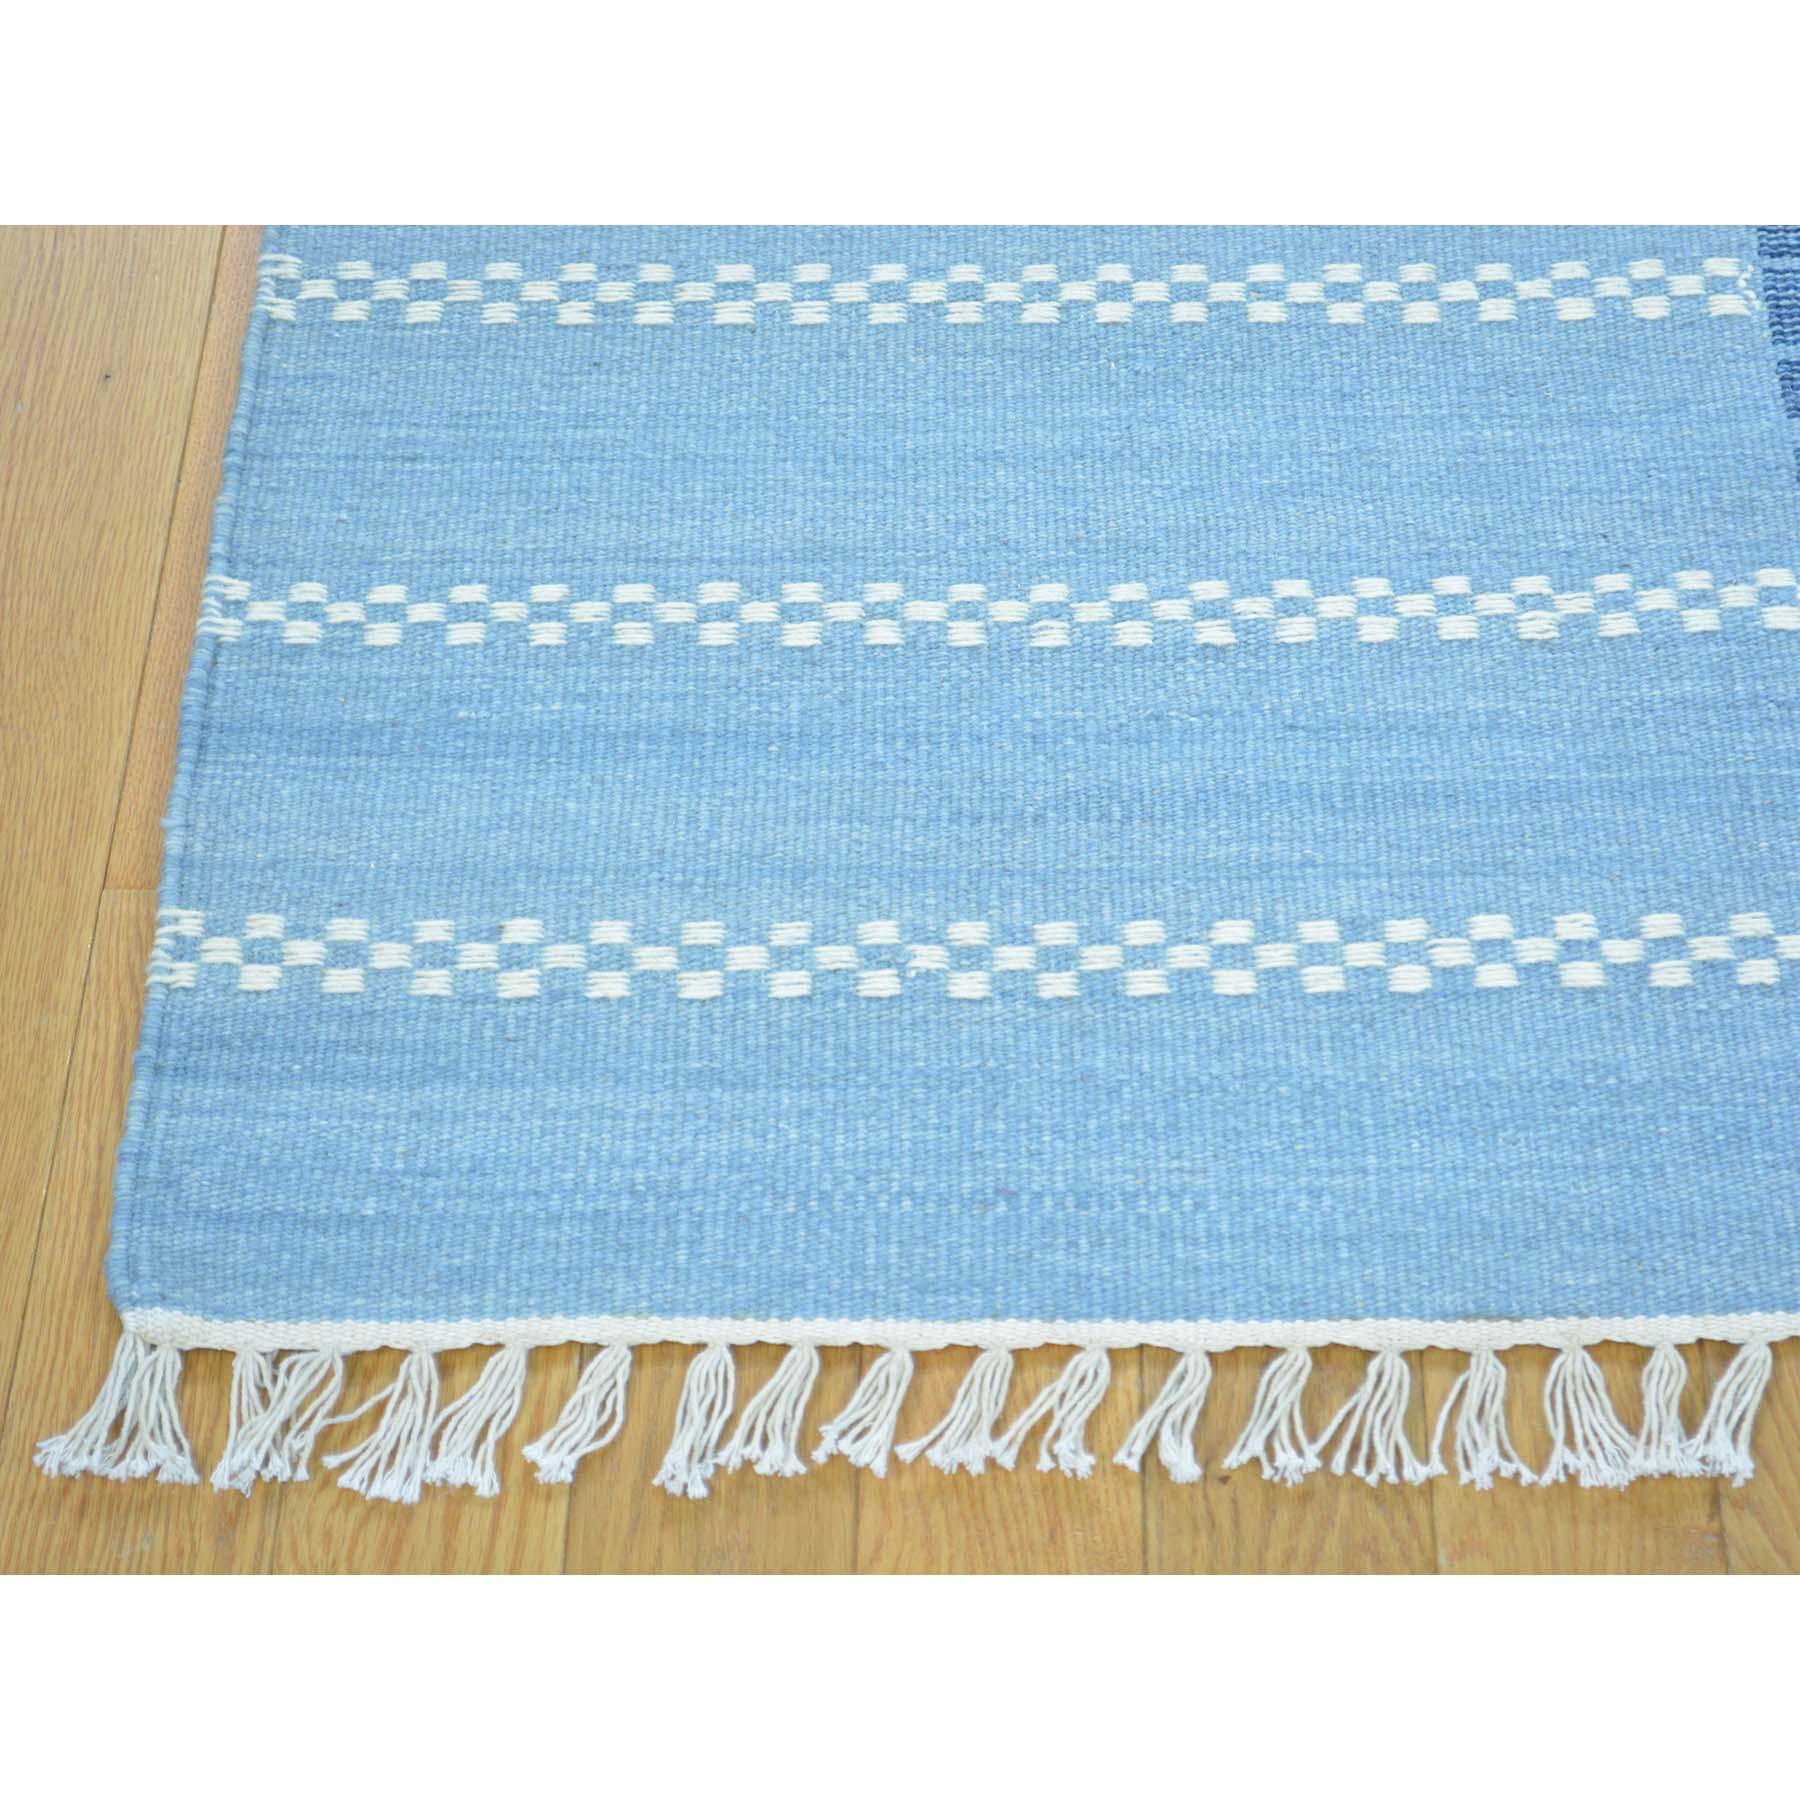 5-7 x7-9  Flat Weave Hand Woven Reversible Durie Kilim Pure Wool Rug